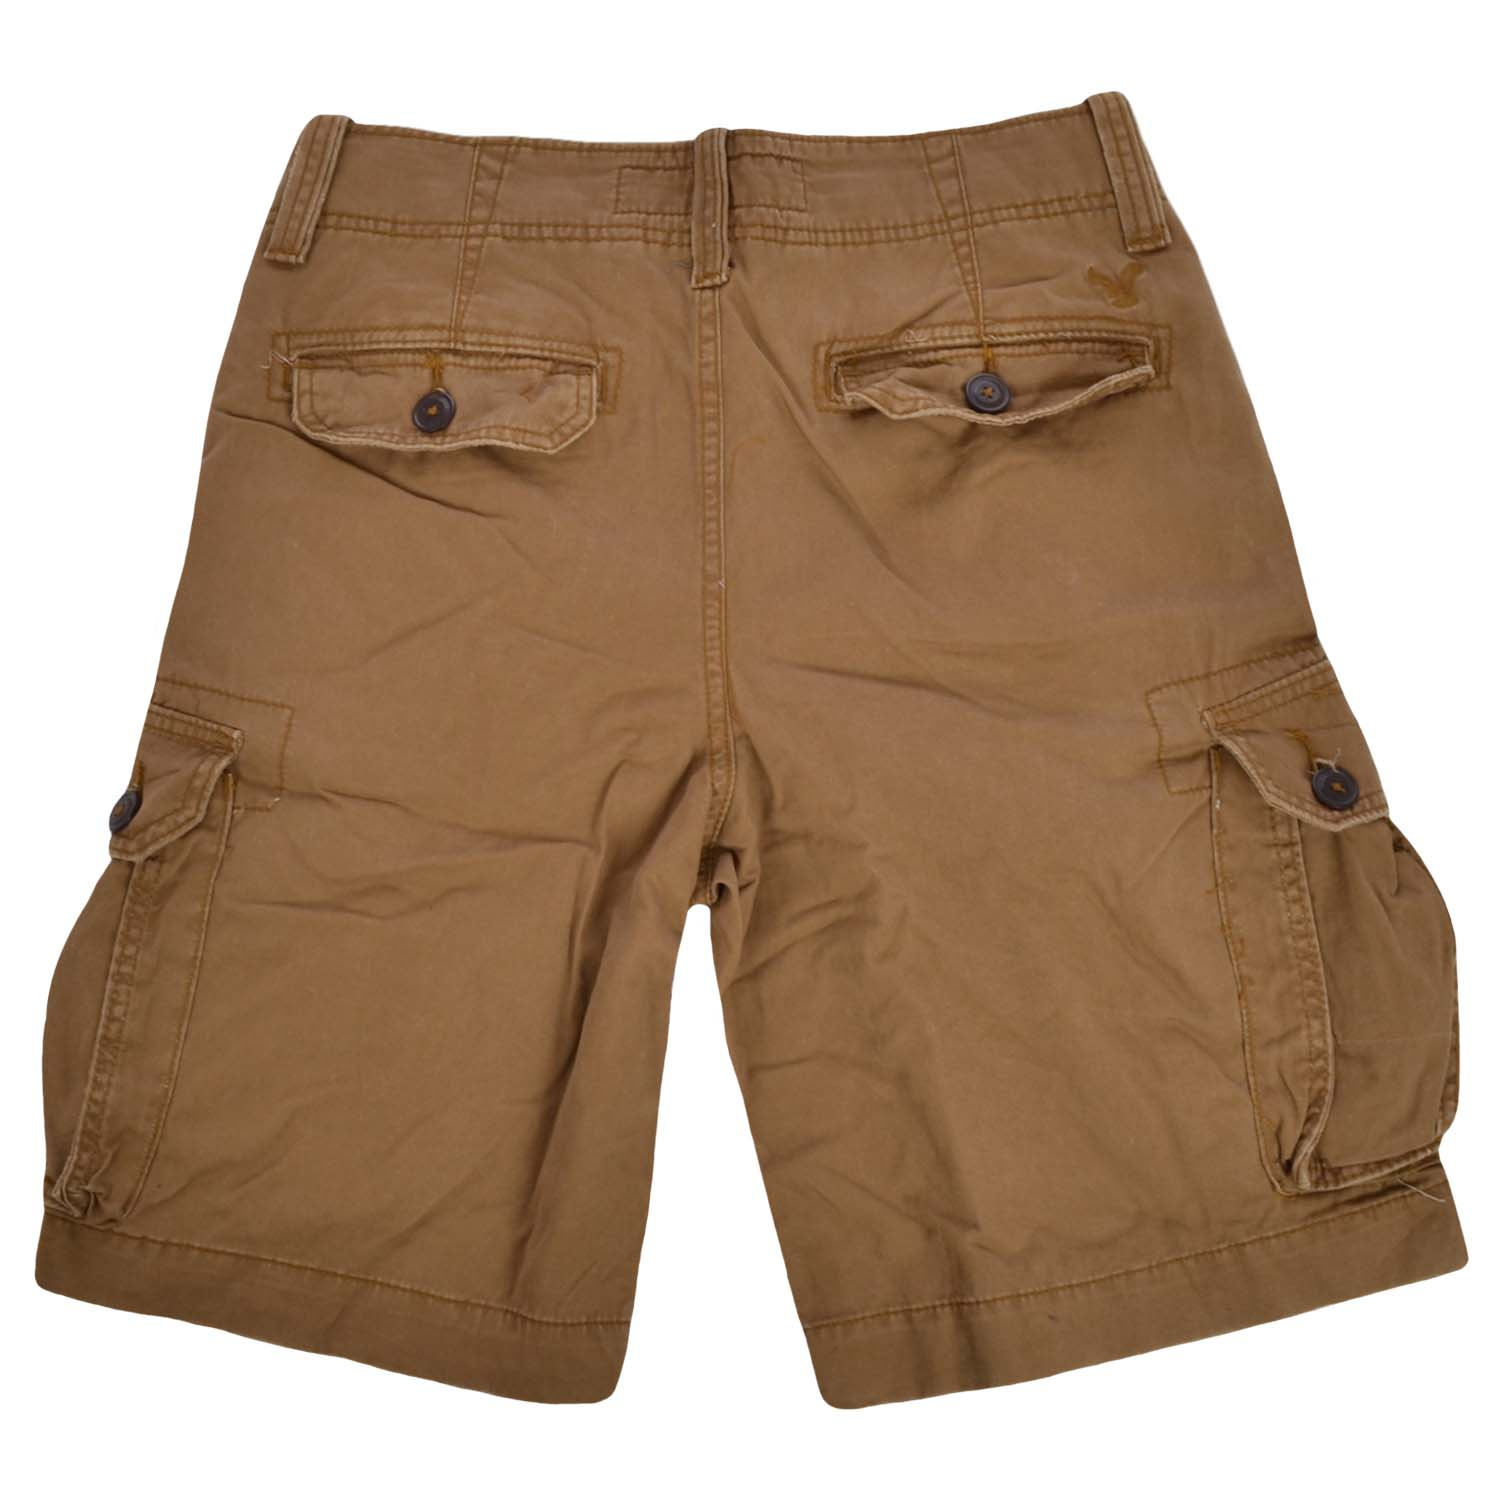 American Eagle Outfitters Mens Classic Cotton Cargo Combat Shorts | eBay